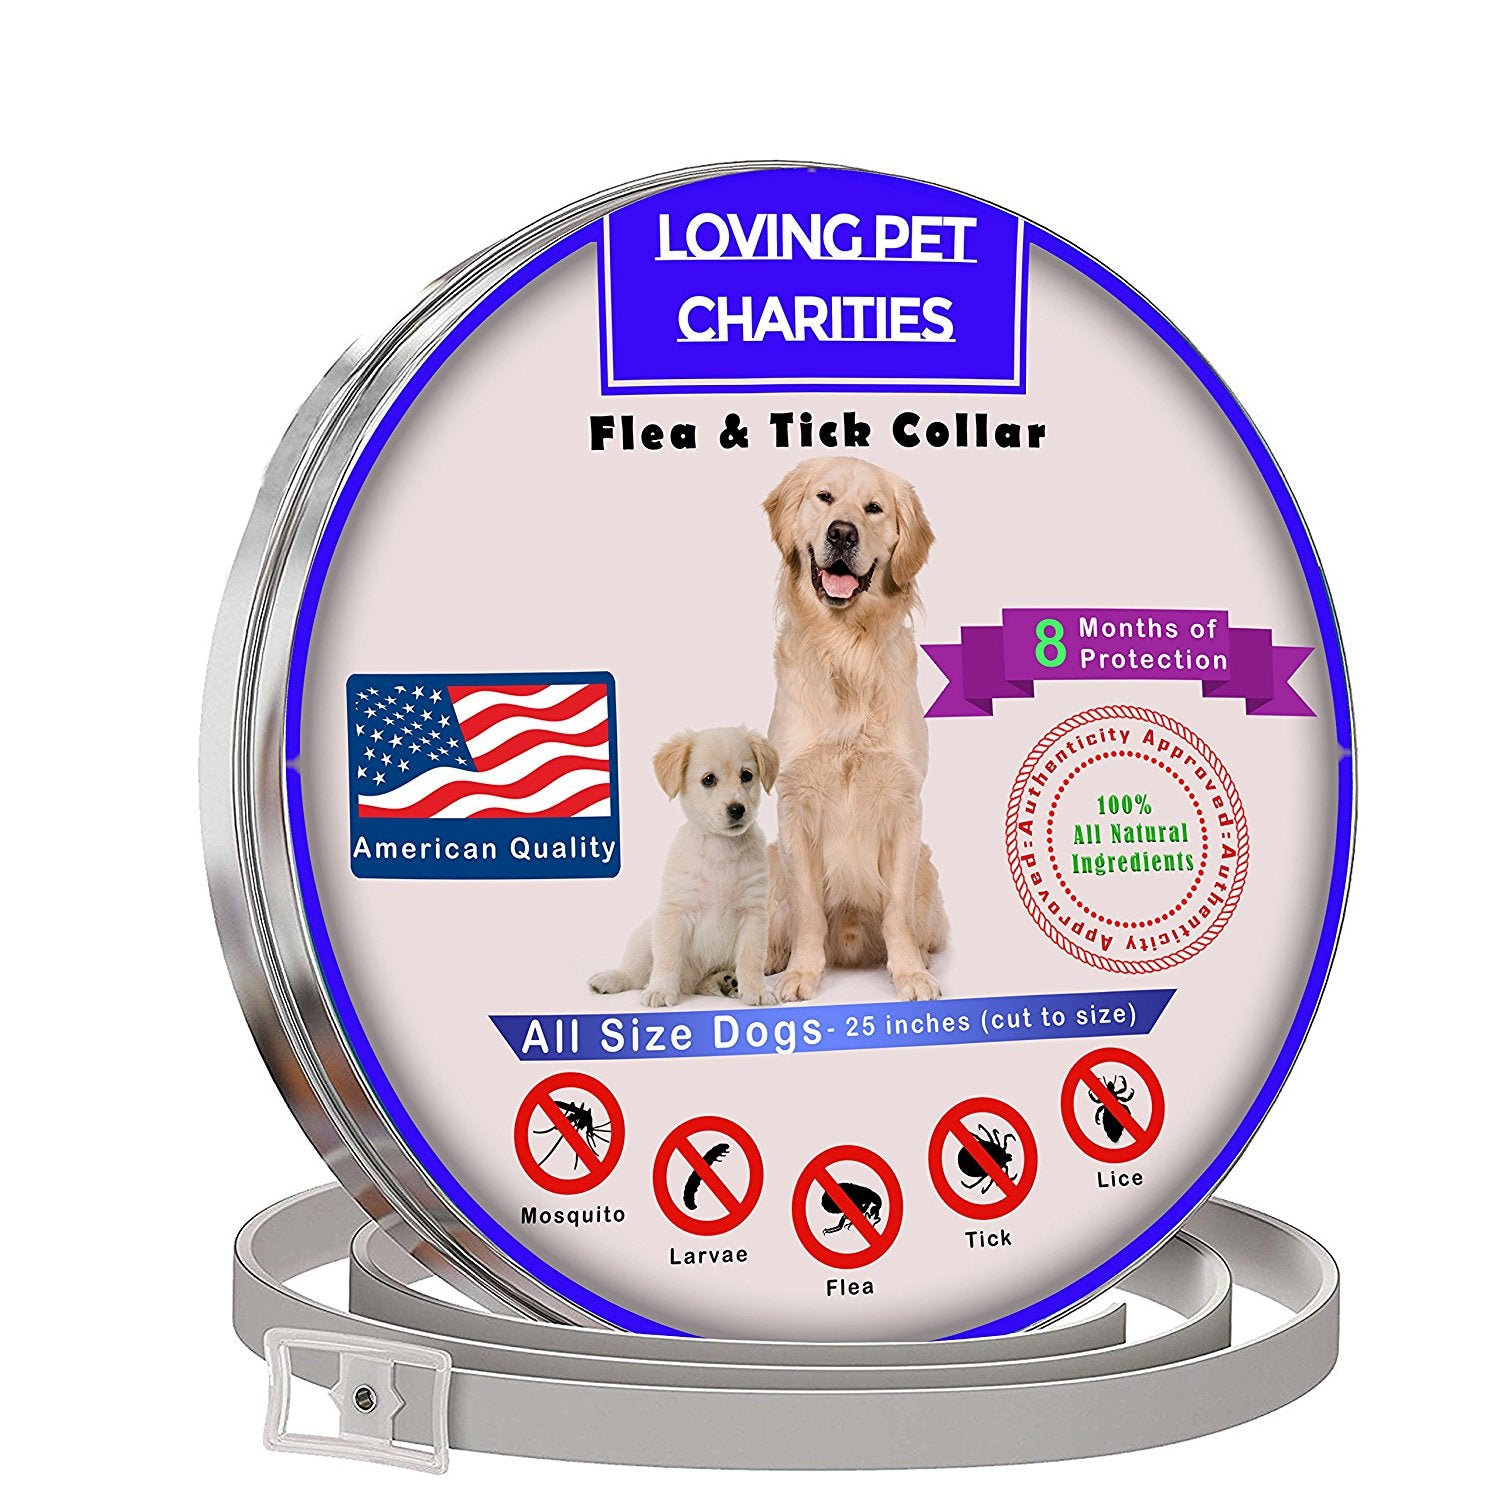 All Natural Flea And Tick Collar For Dogs